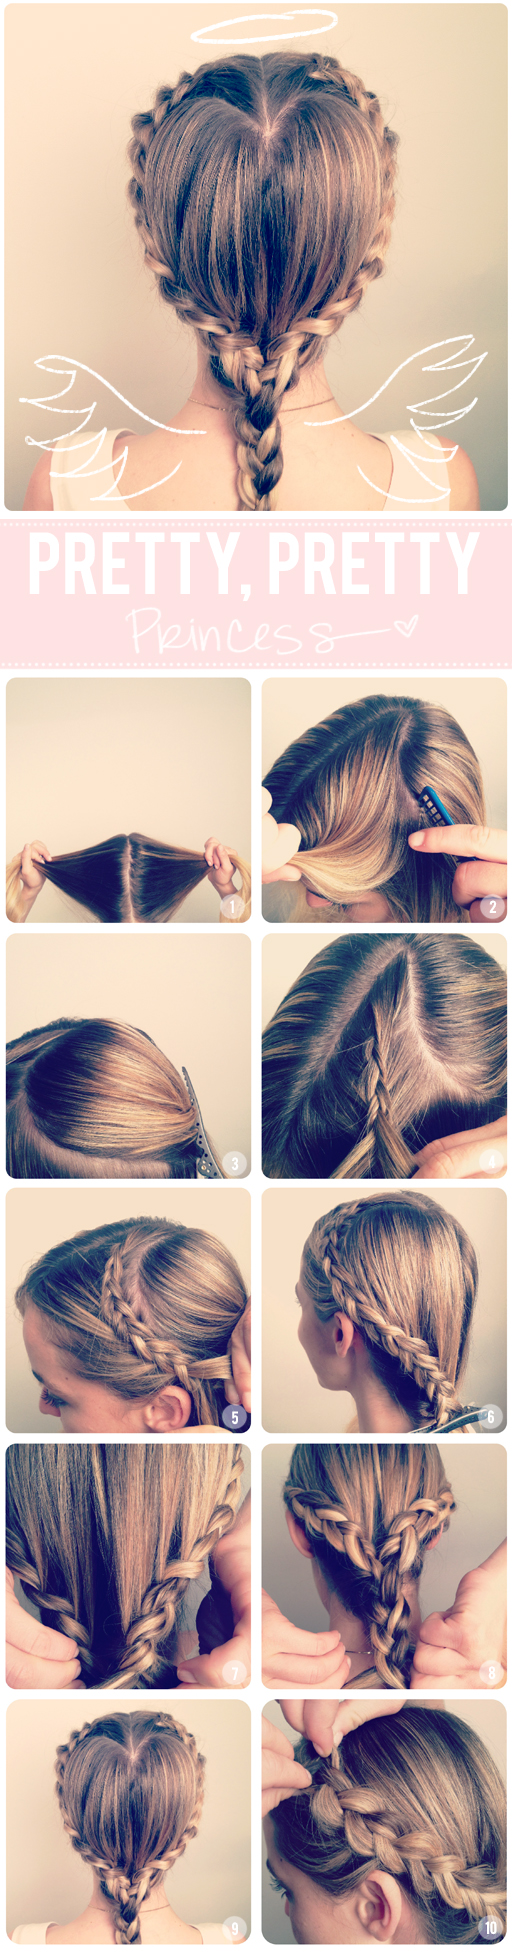 easy hairstyles for short hair tumblr 11 Interesting And Useful Hair Tutorials For Every Day   Fashion